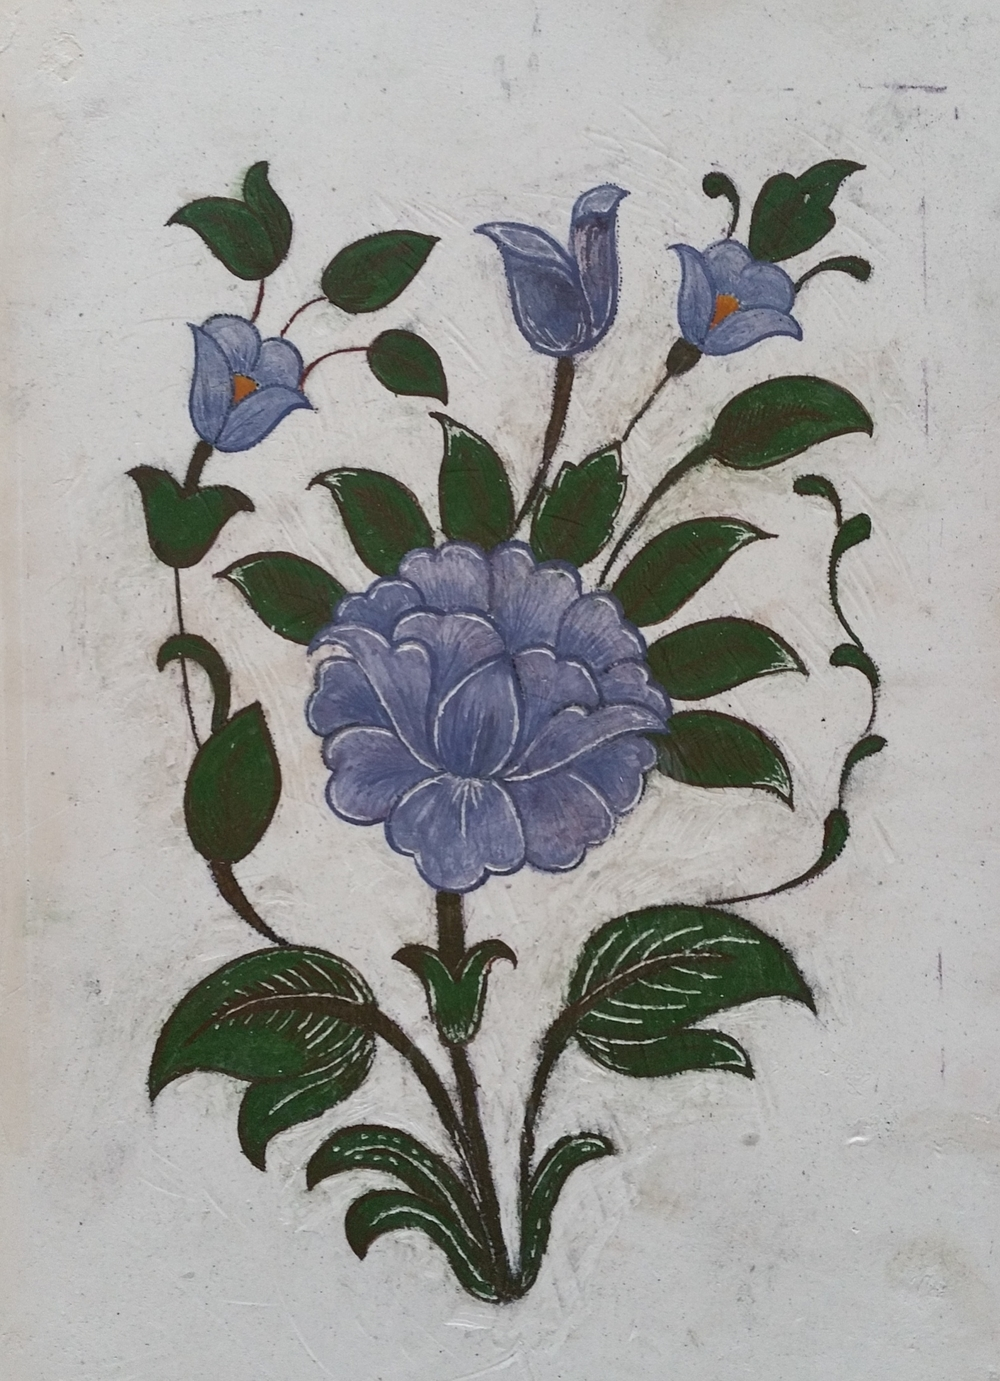 Naqqashi Flower ~ Mughal Art, Indian Art, Asian Art, Islamic Art, Pattern Design, Shaheen Kasmani